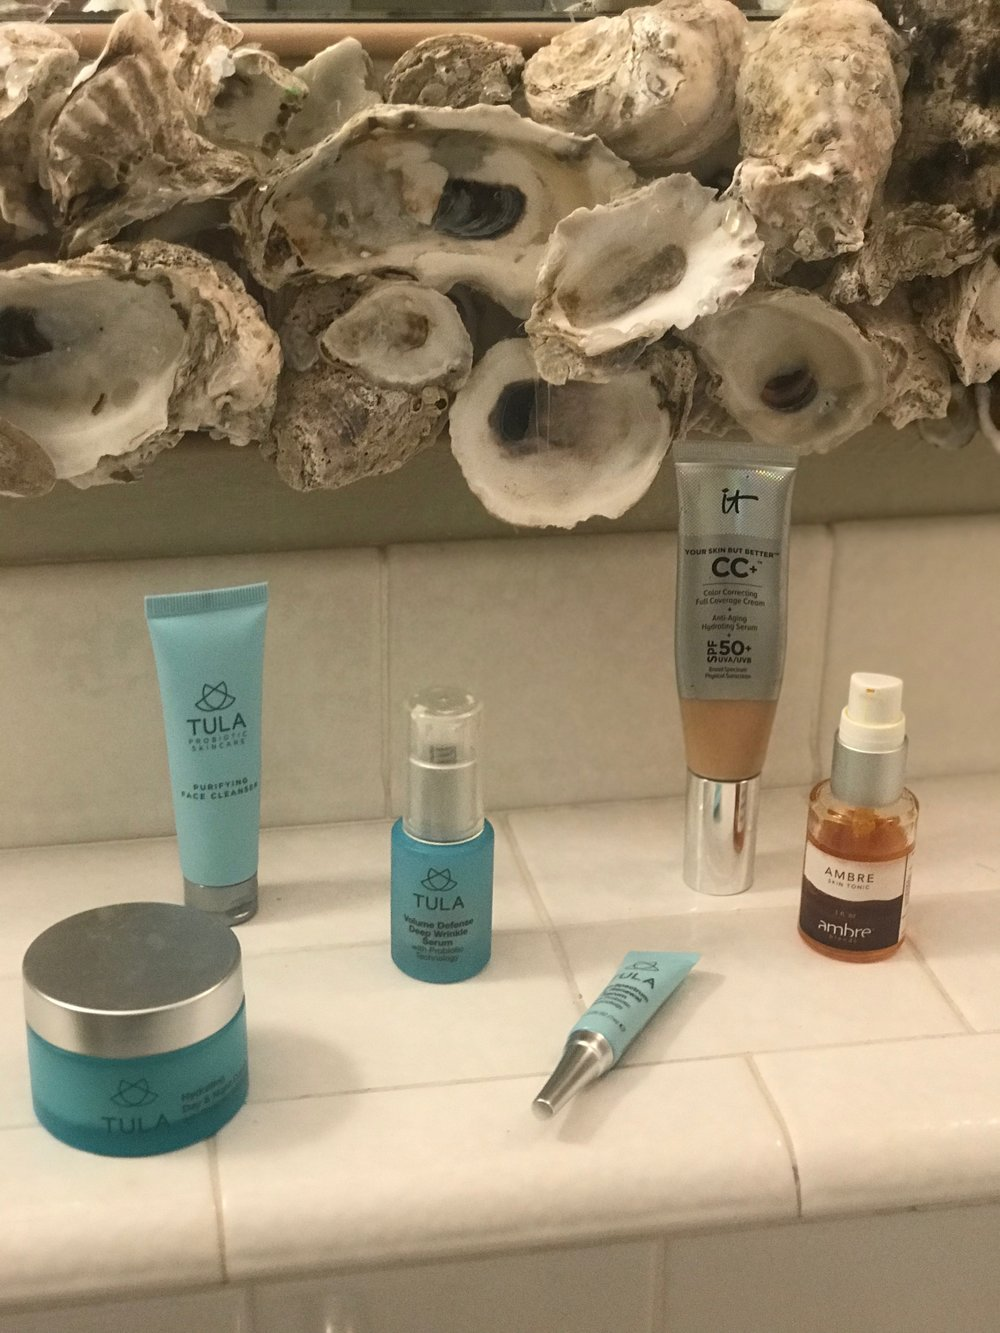 #SkinBabe Brooke Magdzinski Shares Her Favorite Products!